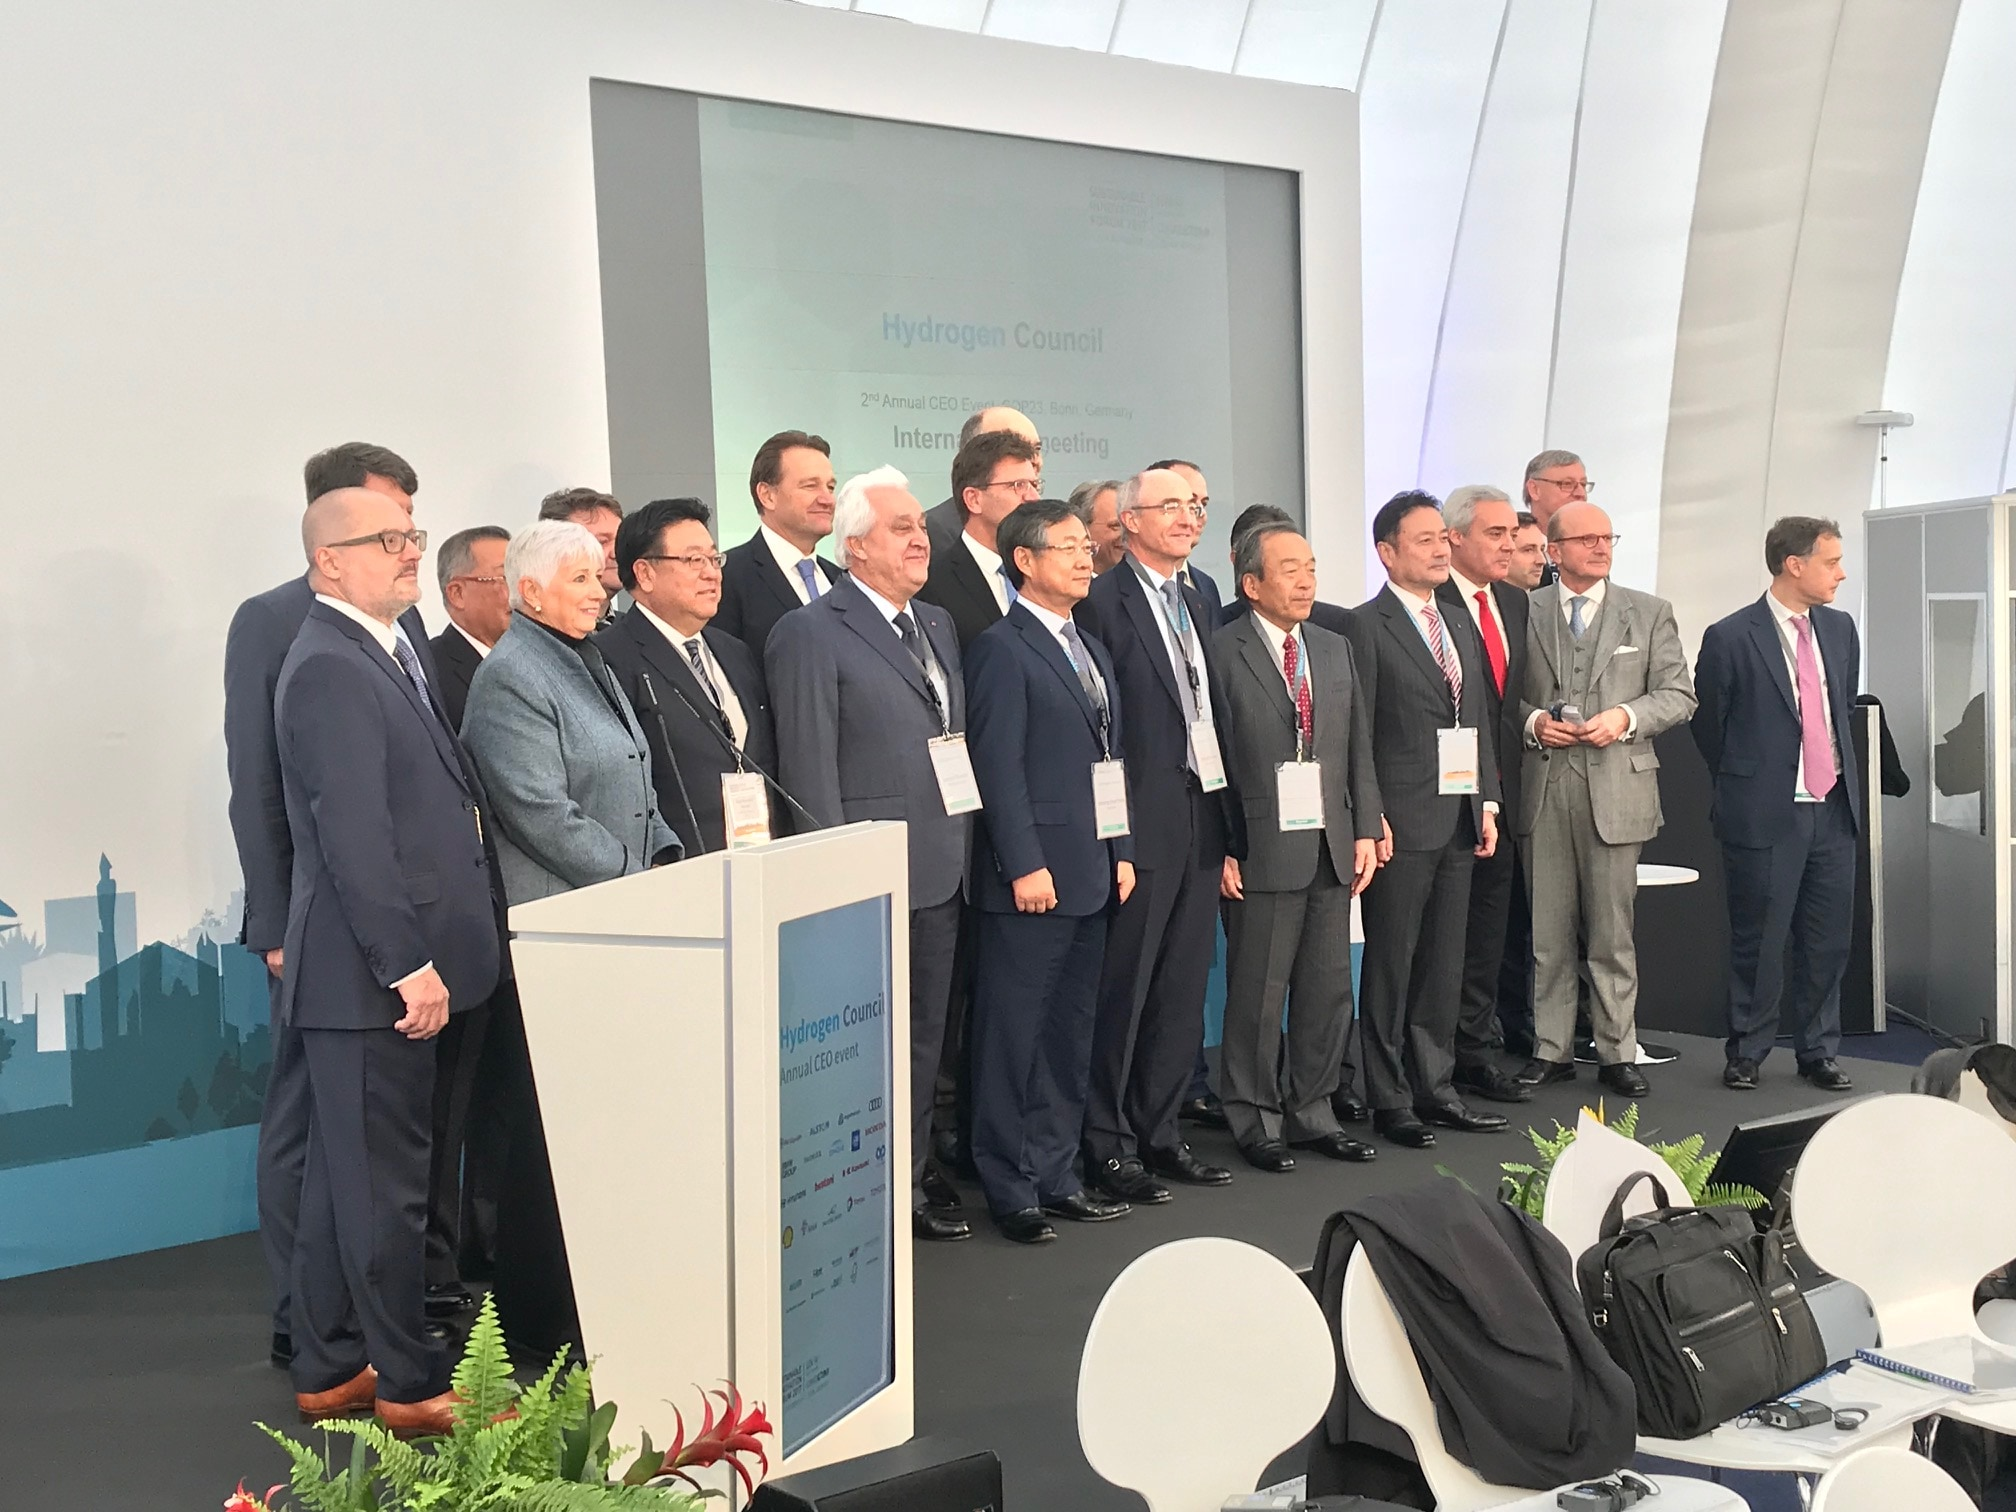 L'HYDROGEN COUNCIL PRESENTE L'HYDROGENE COMME UN PILIER DE LA TRANSITION ENERGETIQUE